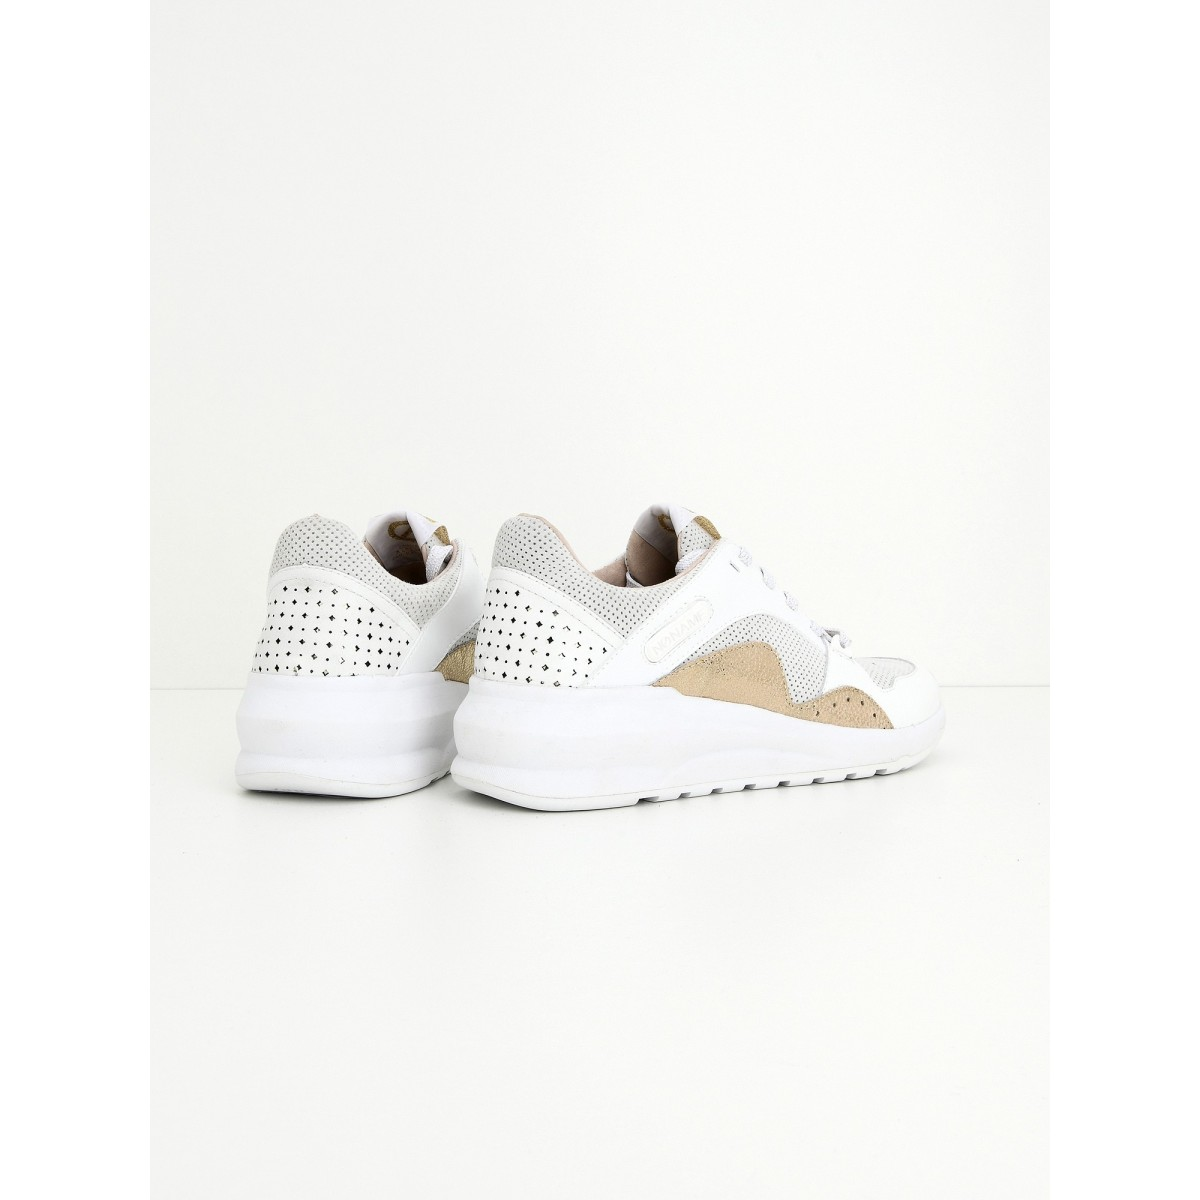 No Name Sono Trainer - Goat Suede - White